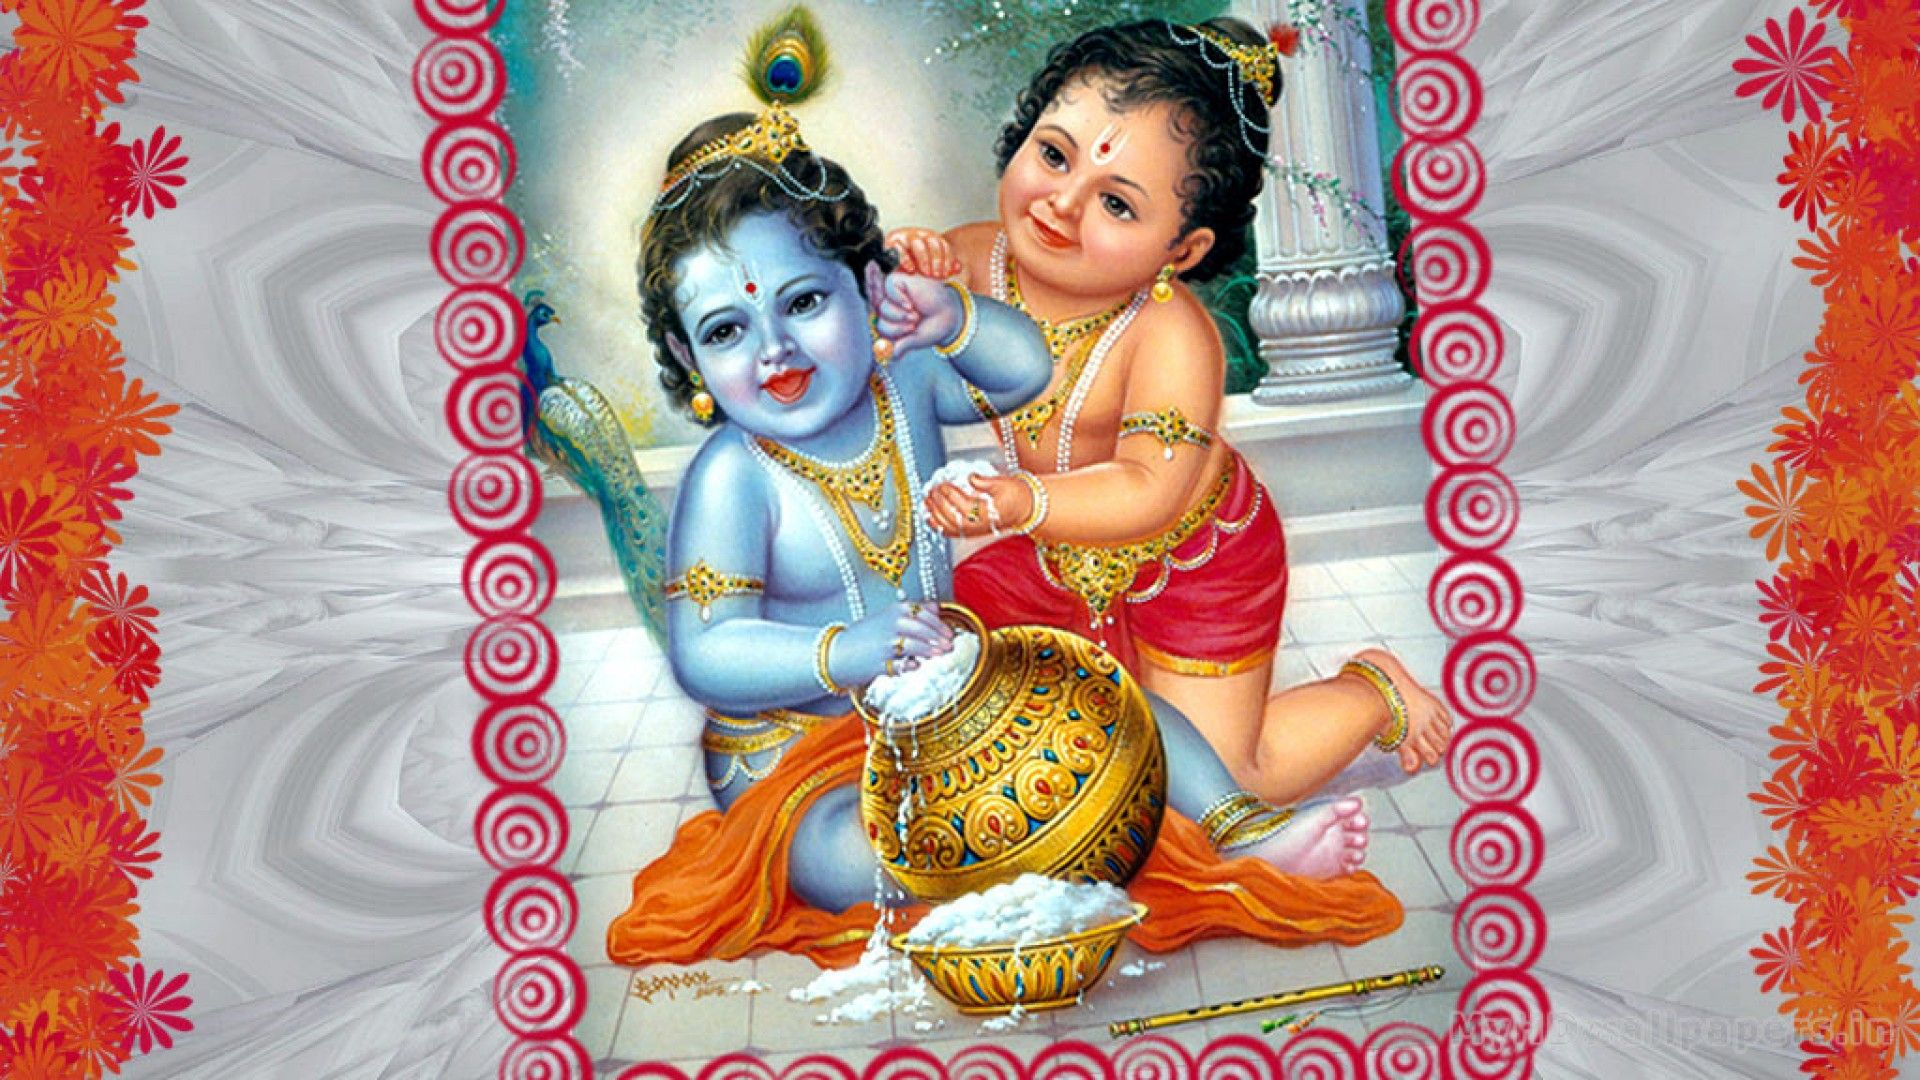 Click Here To Download In Hd Format Lord Krishna And Balram Wallpaper Http Www Superwallpapers I Lord Krishna Wallpapers Bal Krishna Lord Krishna